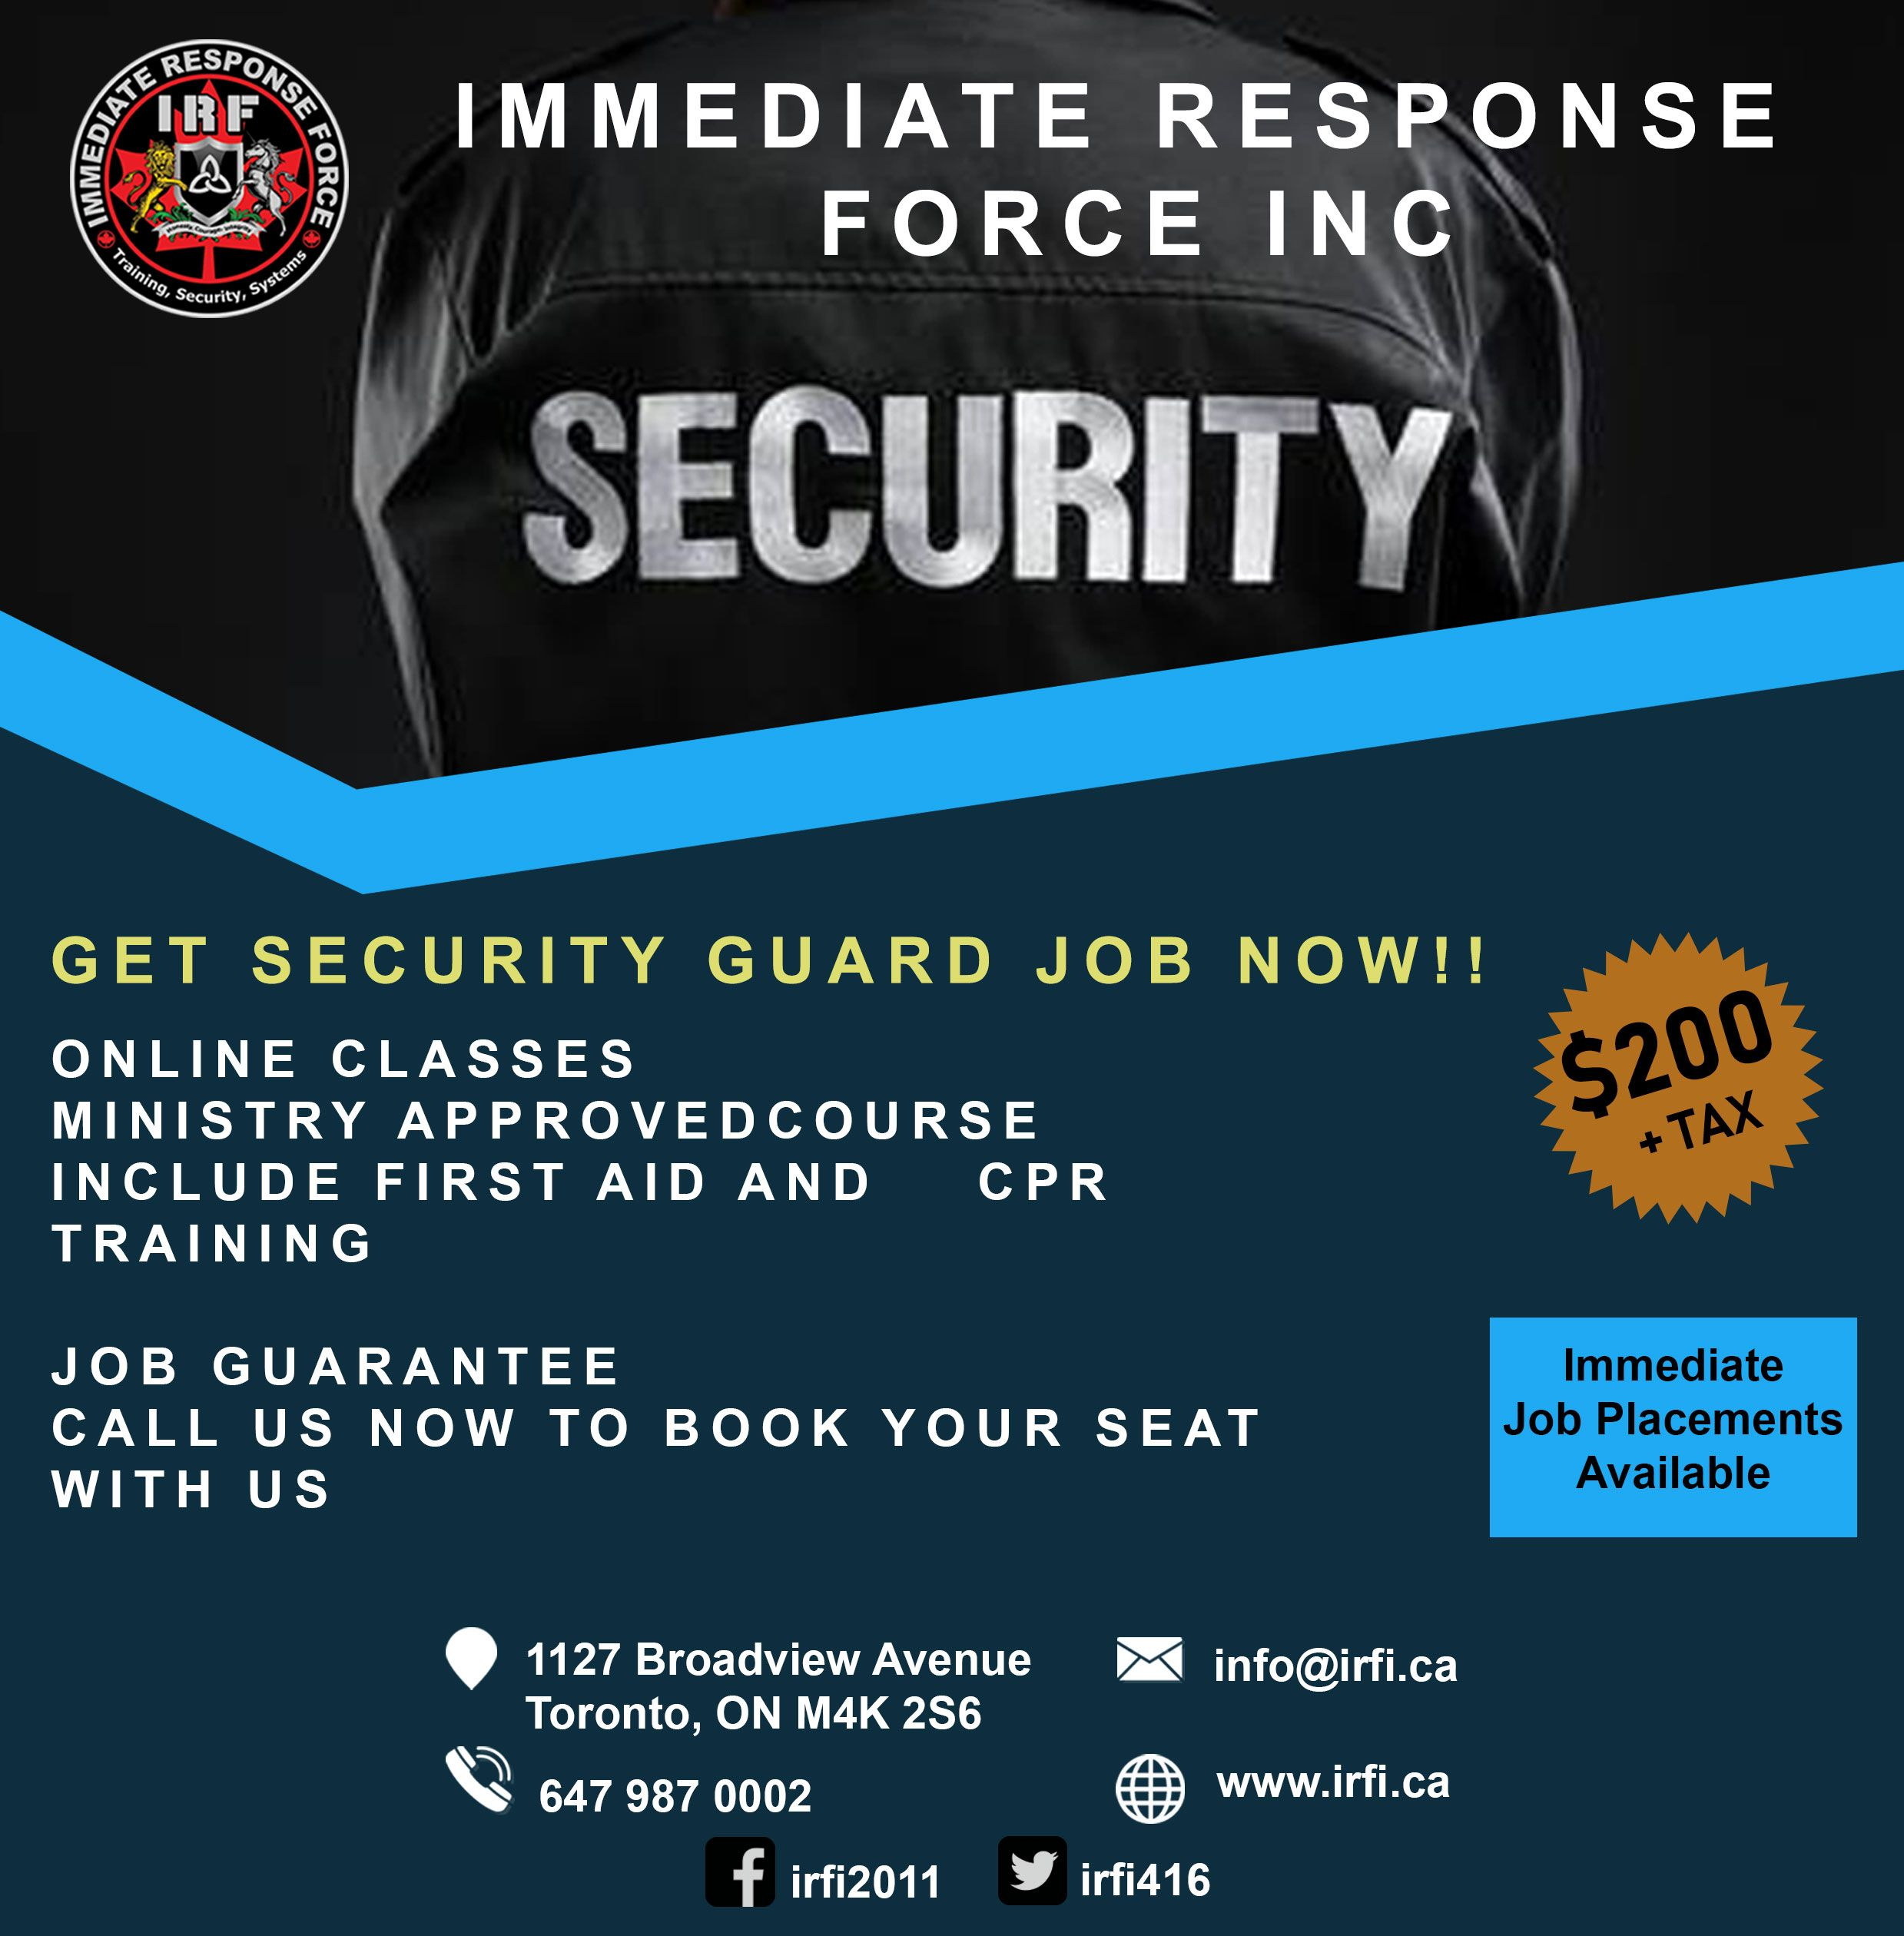 URGENT! WE NEED SECURITY GUARDS; CONTACT US for IMMEDIATE